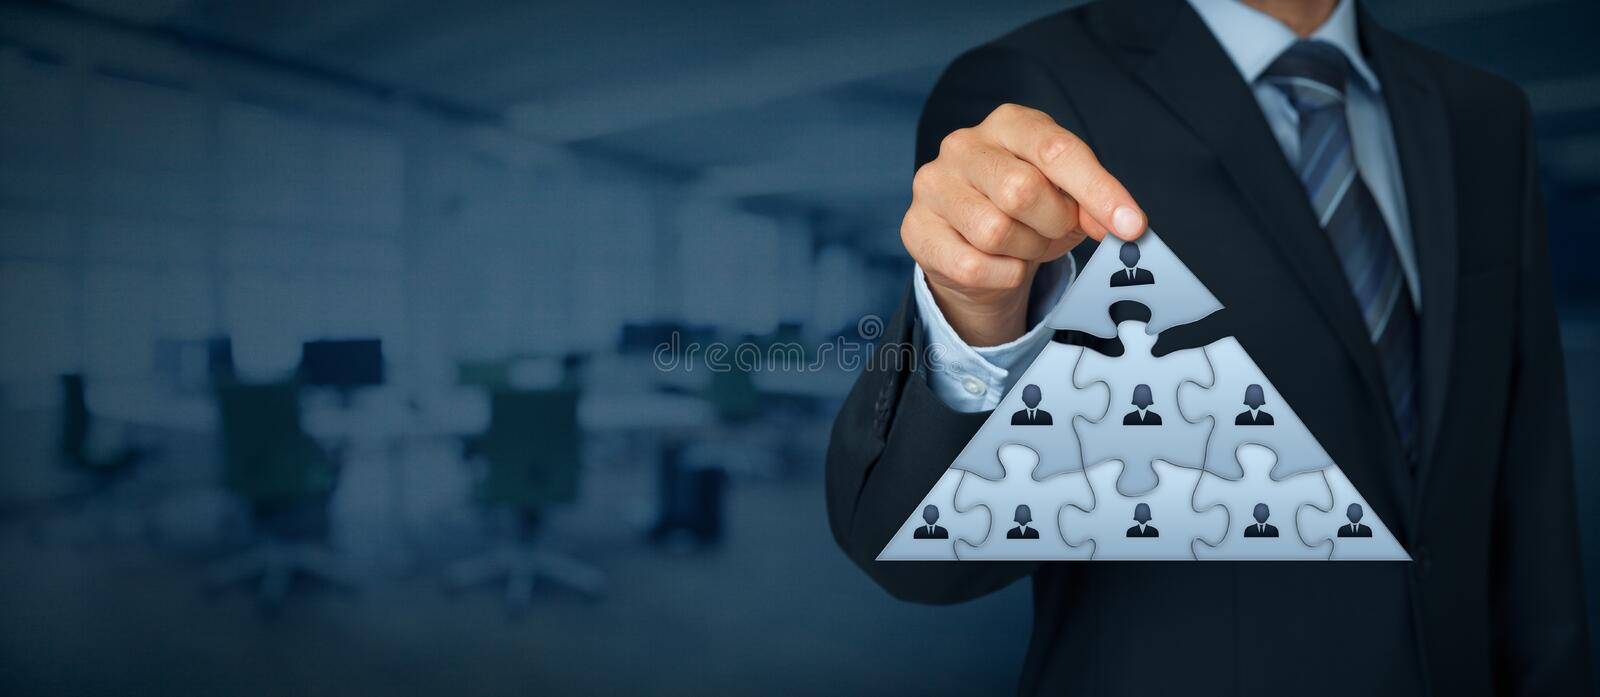 Leader and CEO. CEO, leadership and corporate hierarchy concept - recruiter complete team represented by puzzle in pyramid scheme by one leader person (CEO) royalty free stock image